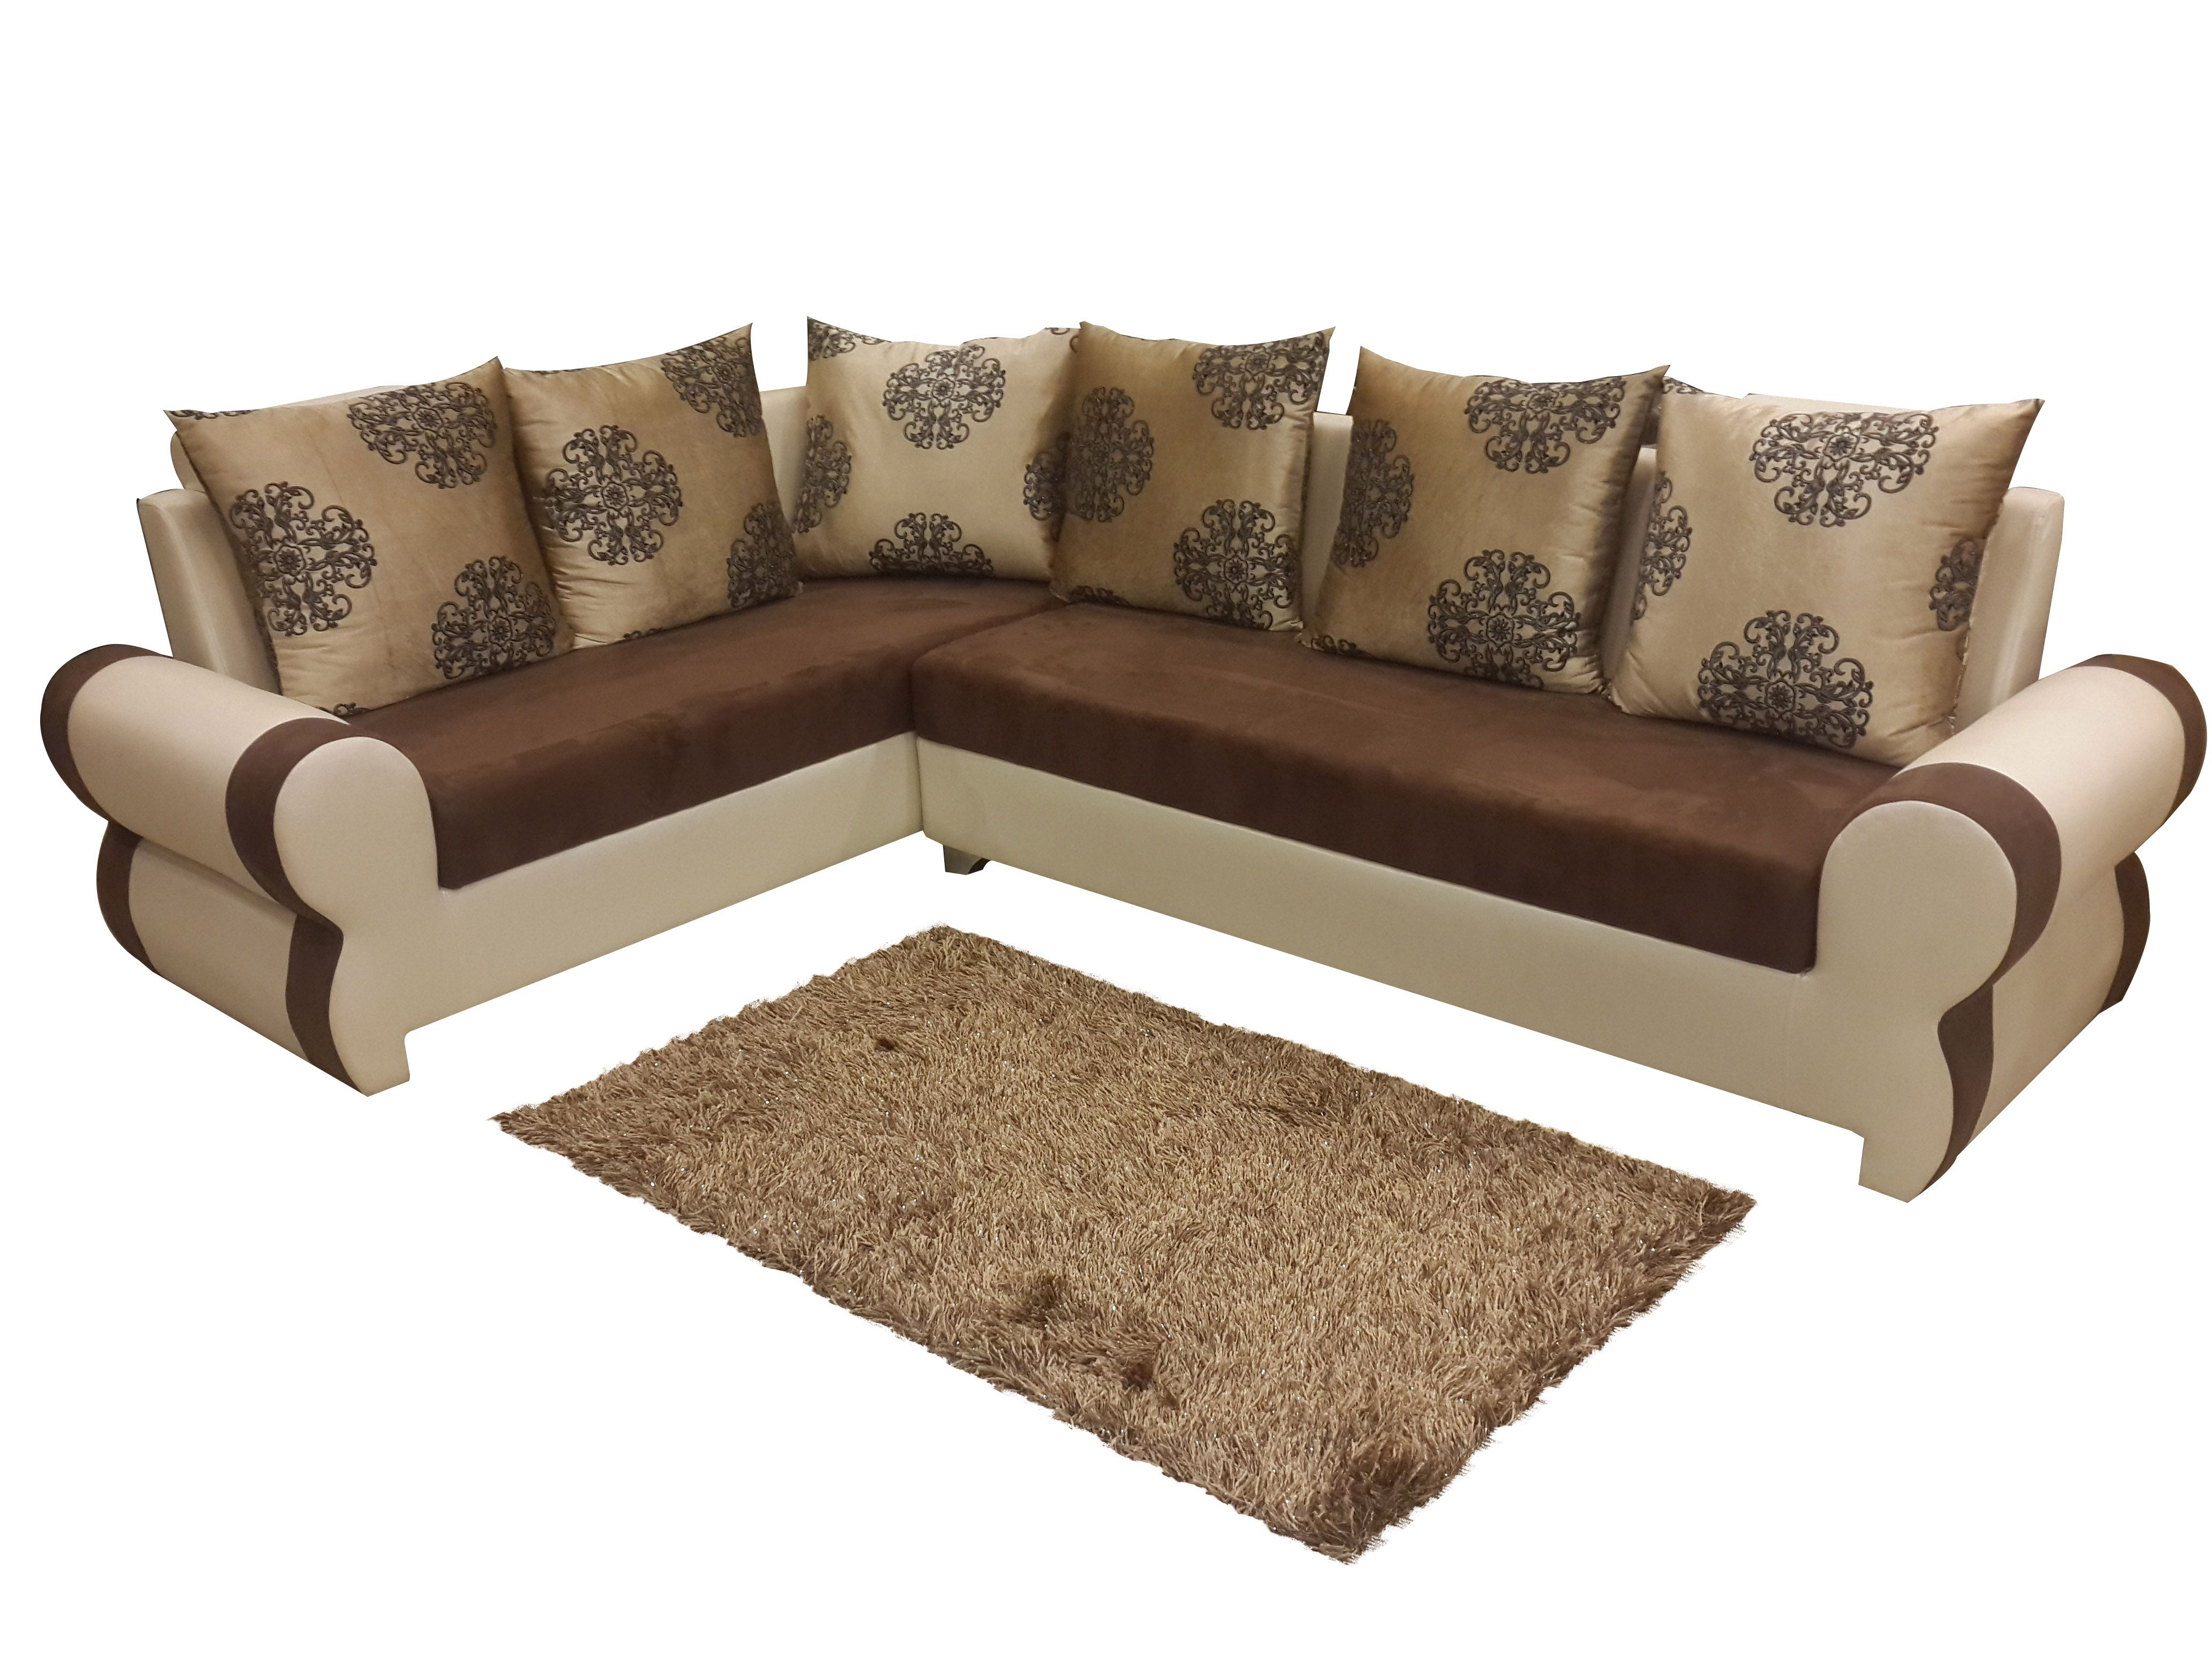 Buy online different types of sofa sets from Suris